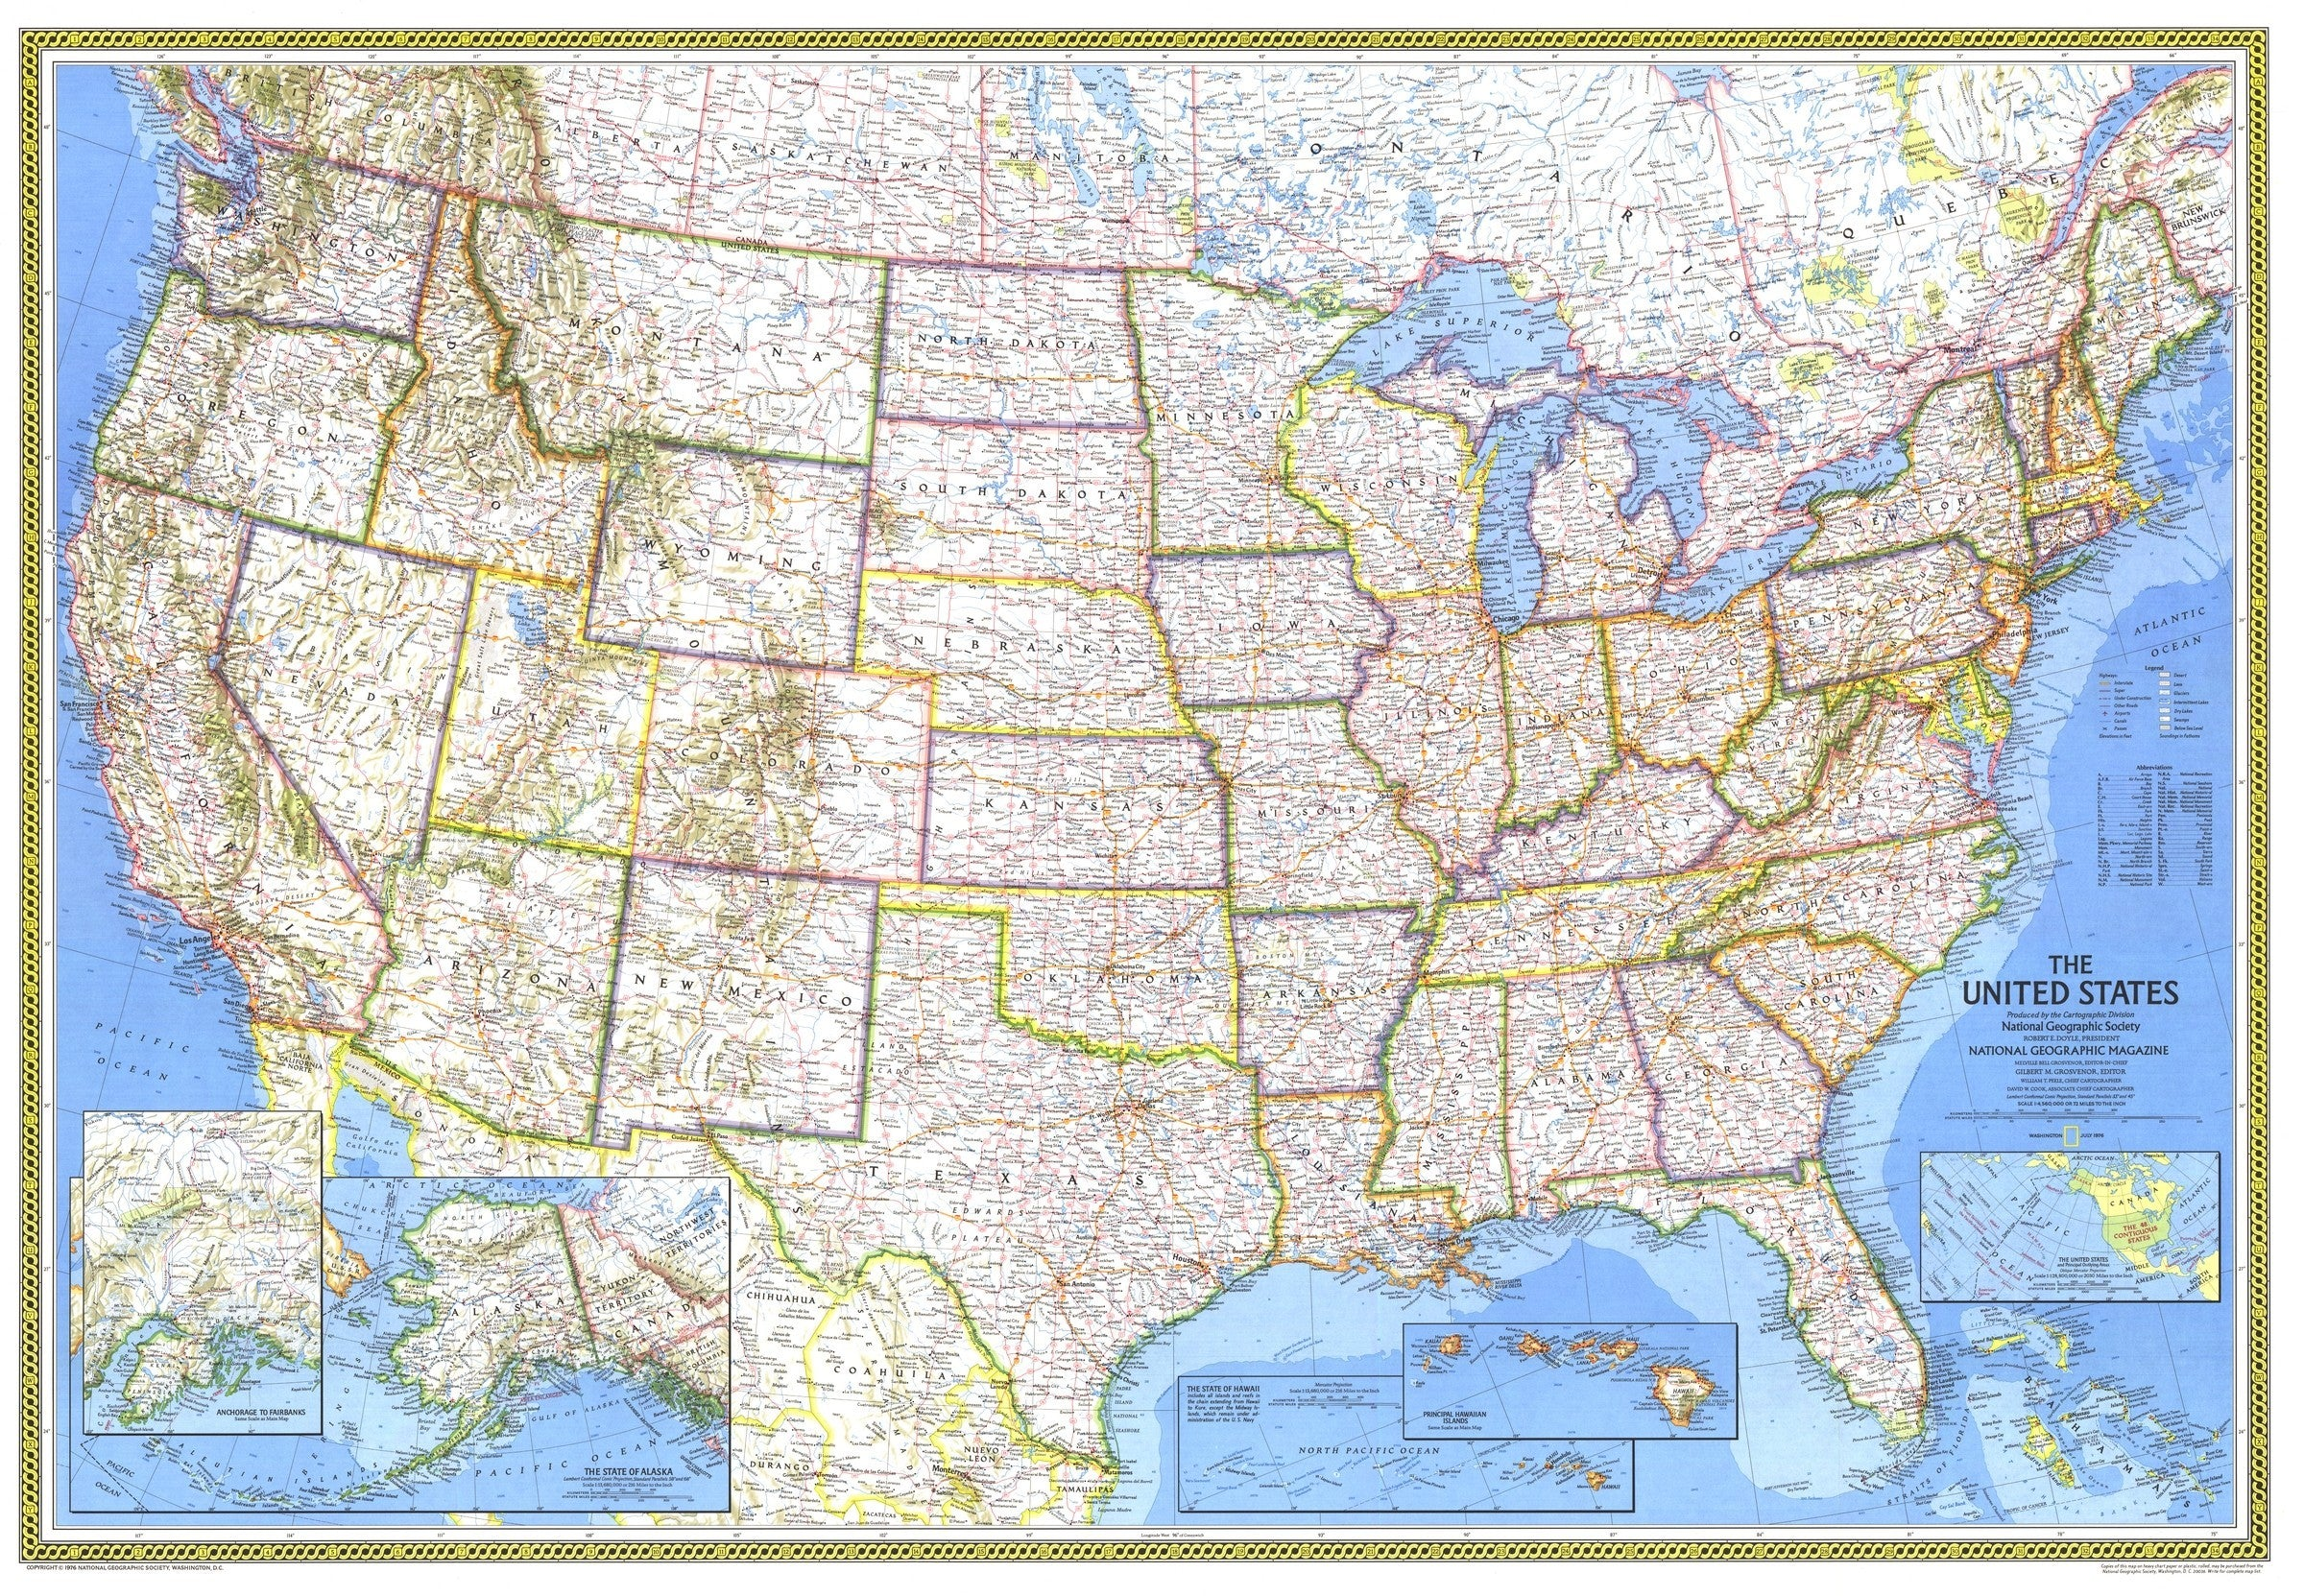 national geographic united states map National Geographic United States Map 1976 | Maps.com.com